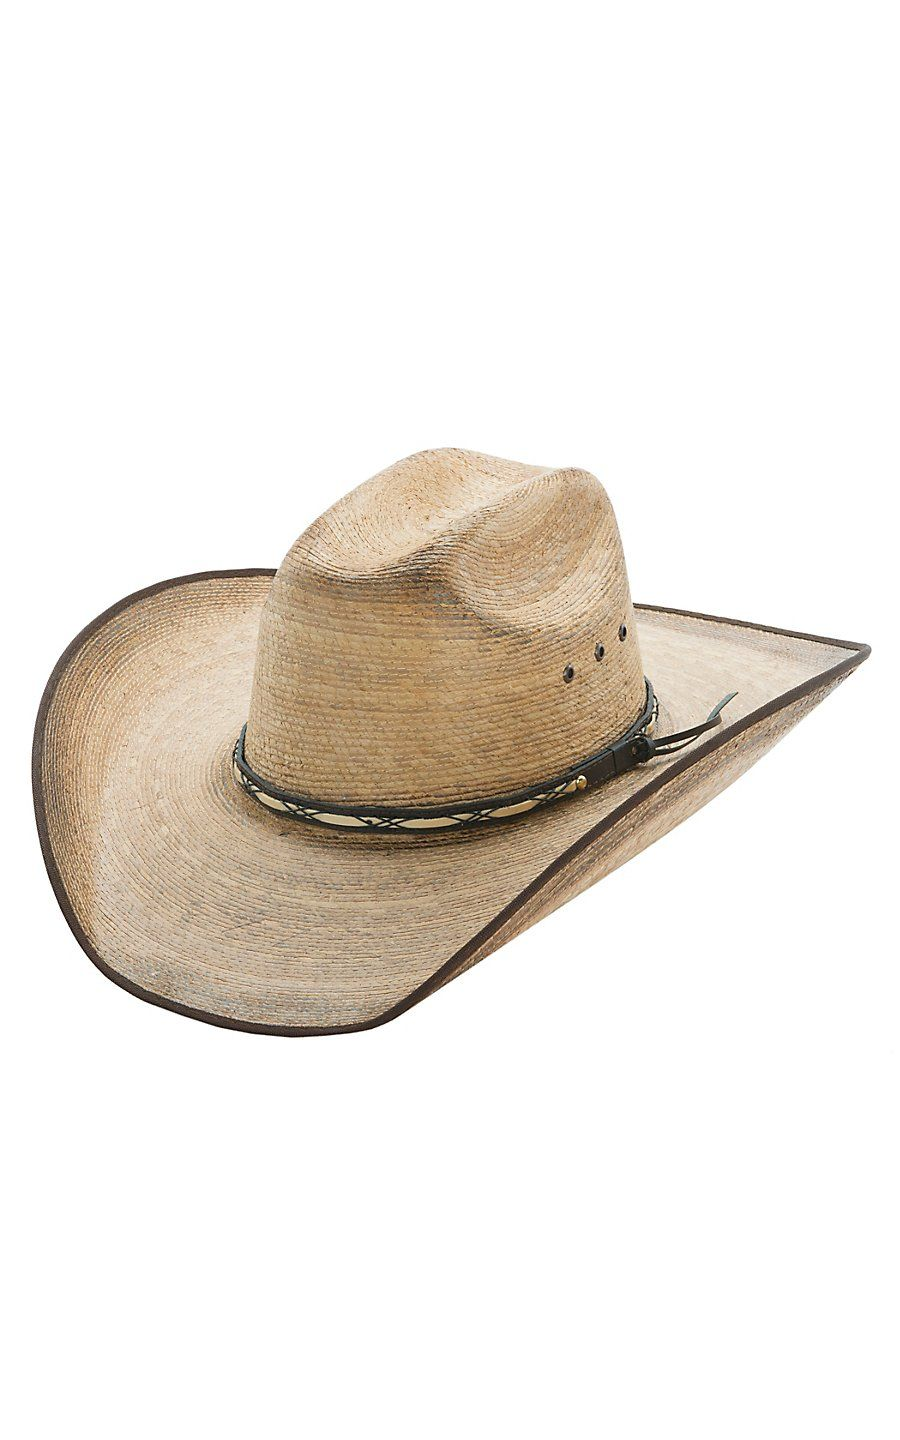 Pin By Kenneth Heintz On Dance Cowboy Hats Cowboy Outfits Cowgirl Hats